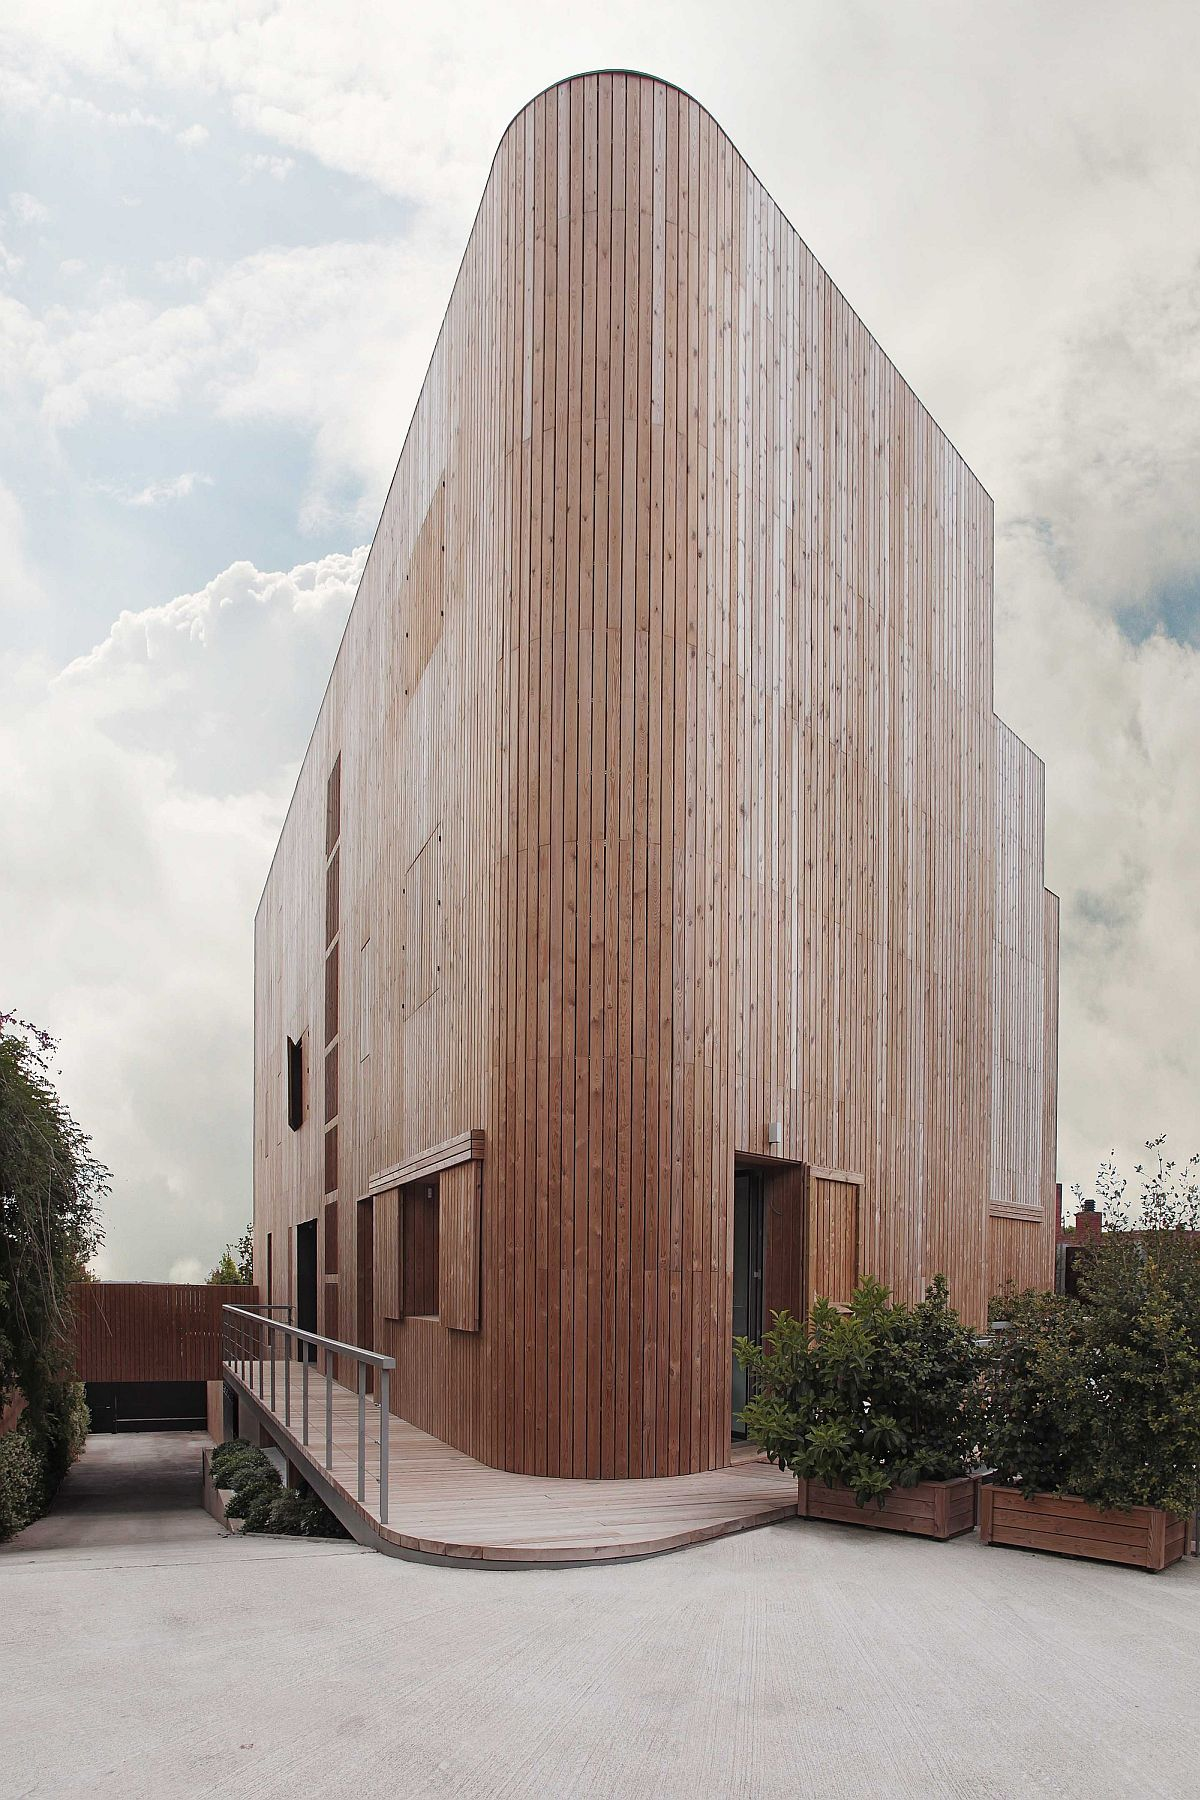 Wooden facade custom designed to keep out street noise and pollution